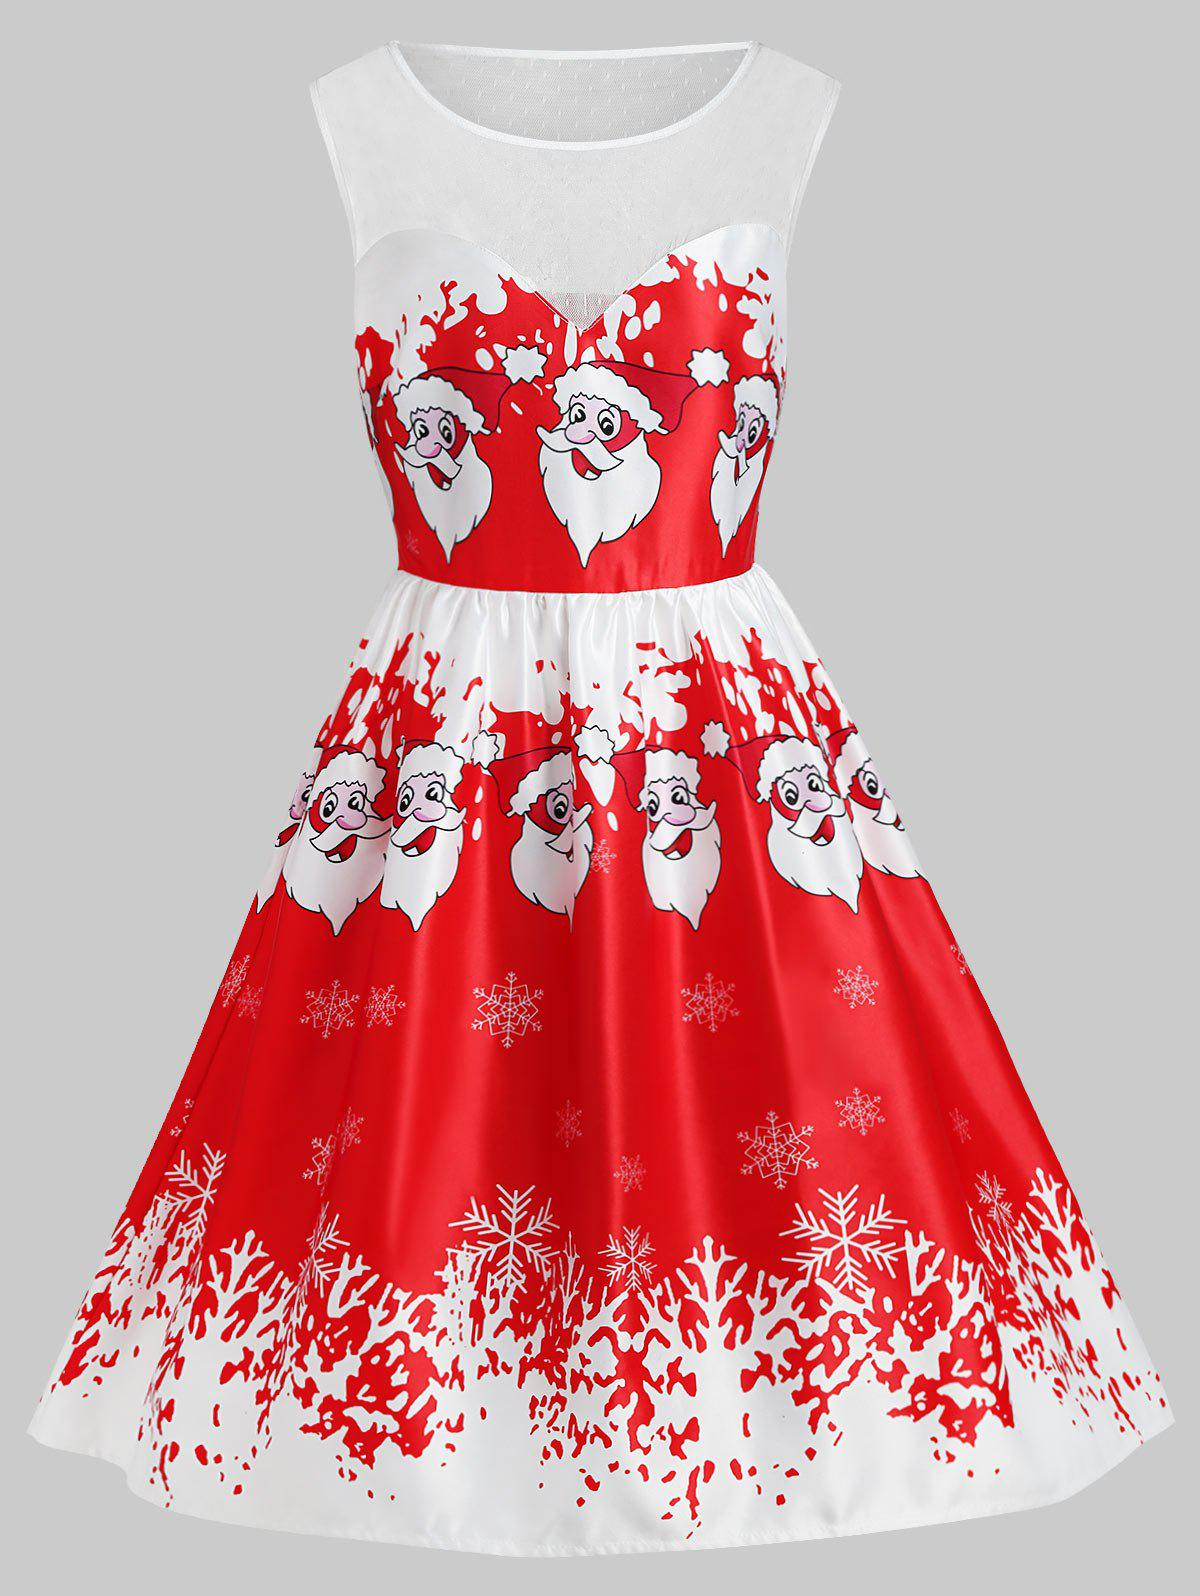 New Plus Size Christmas Santa Claus Lace Insert Dress